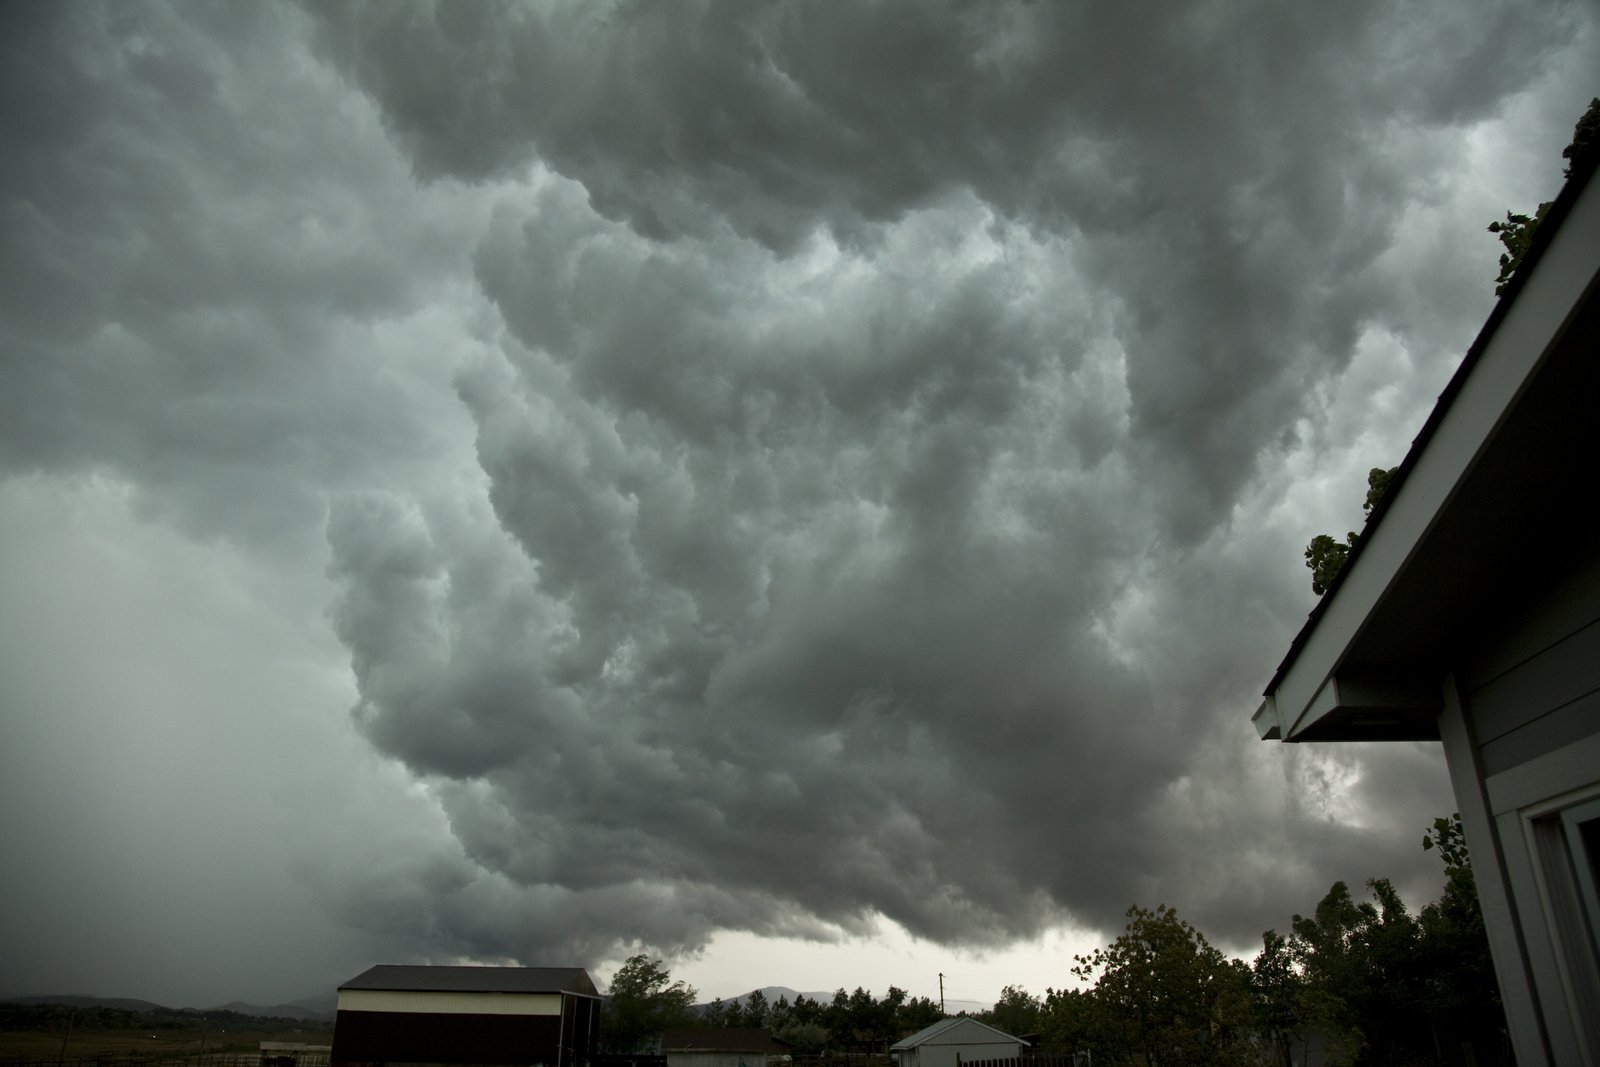 RonNewby: Storm Clouds